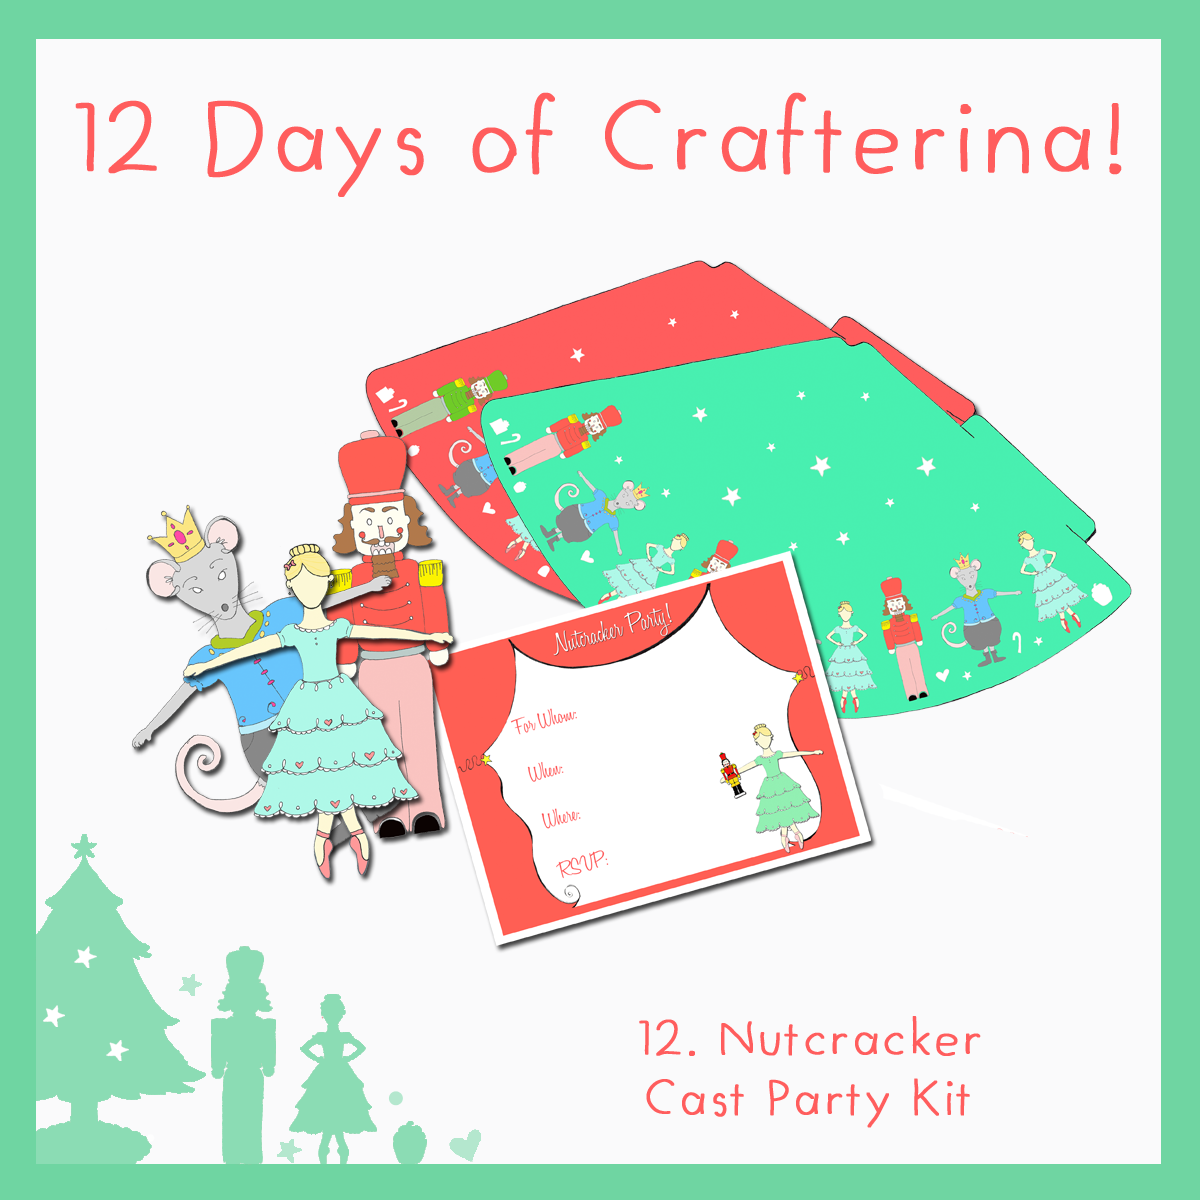 12 Gifts Of Christmas Cast.Celebrate With The Nutcracker Cast Party Kit For The 12 Days